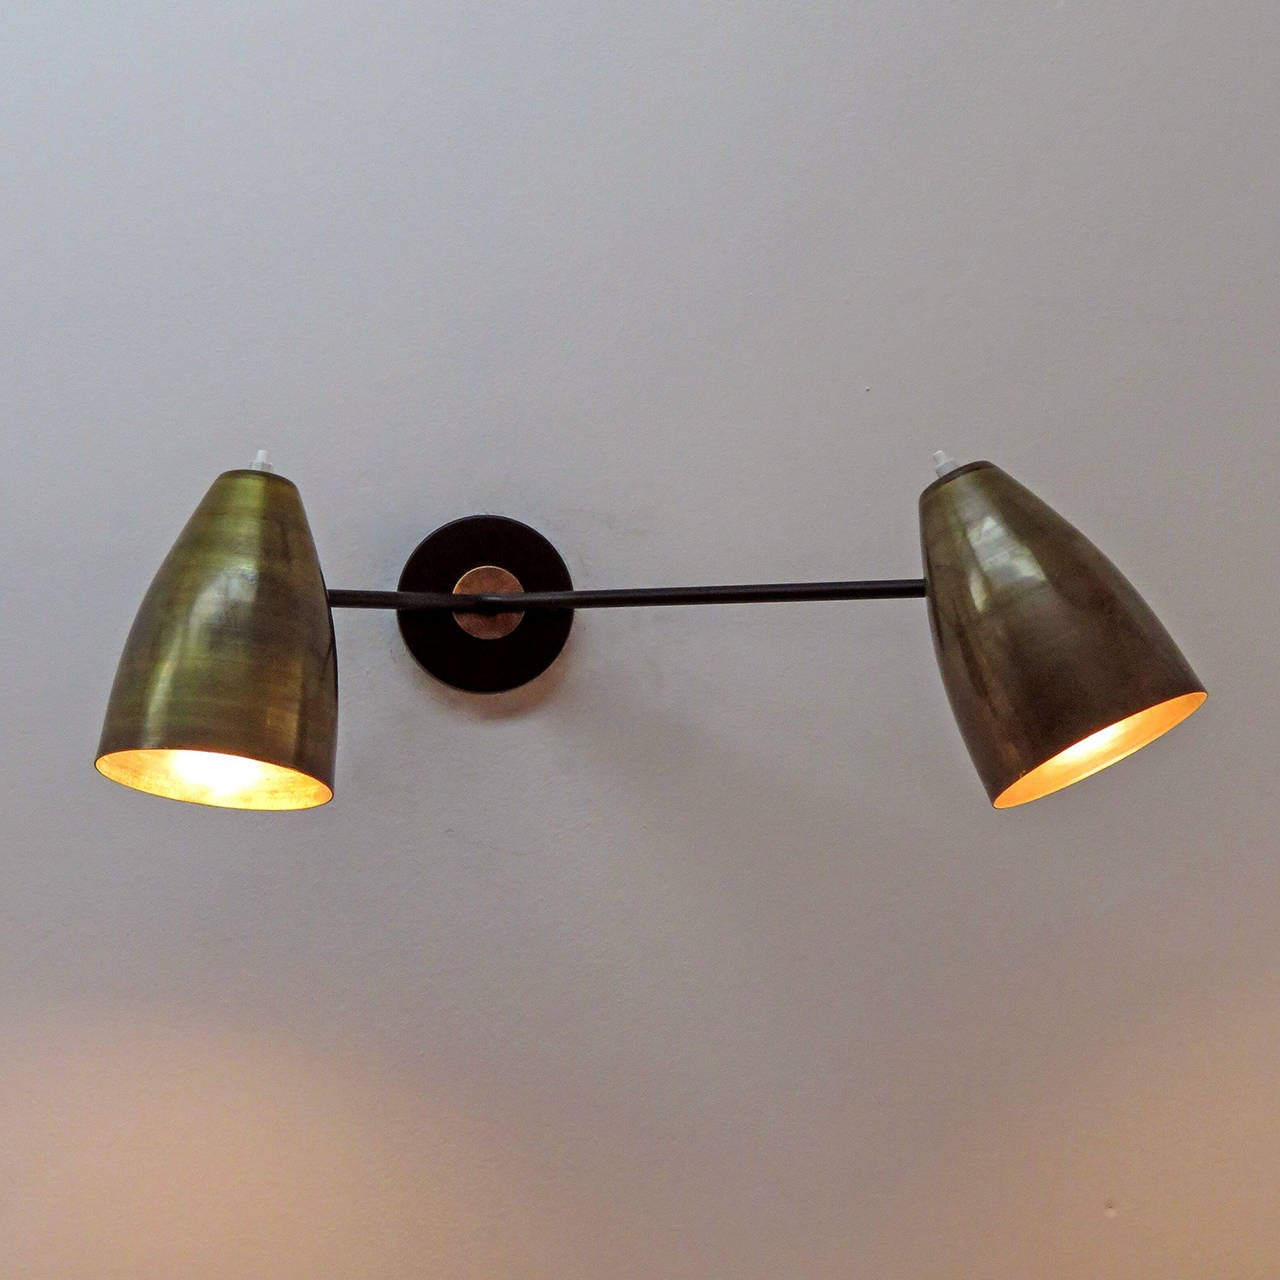 Double Arm Brass Wall Lights L3G at 1stdibs